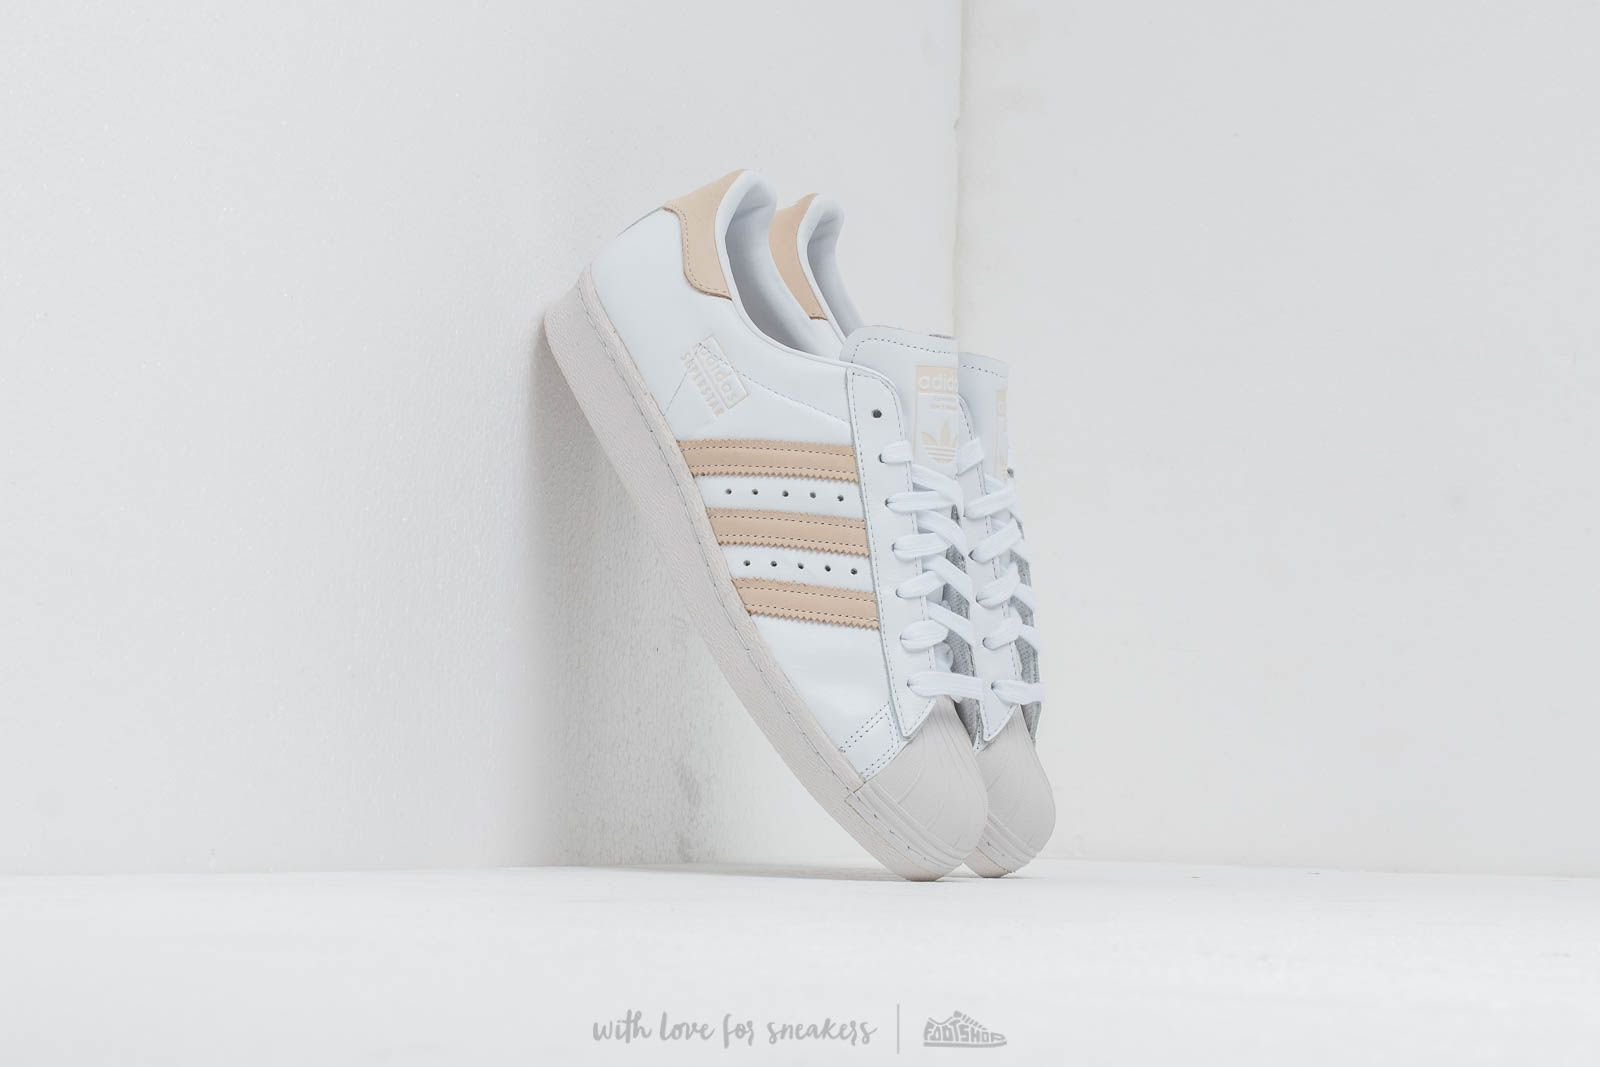 Chaussures et baskets homme adidas Superstar 80S Ftw White/ Ecrtin/ Crystal White